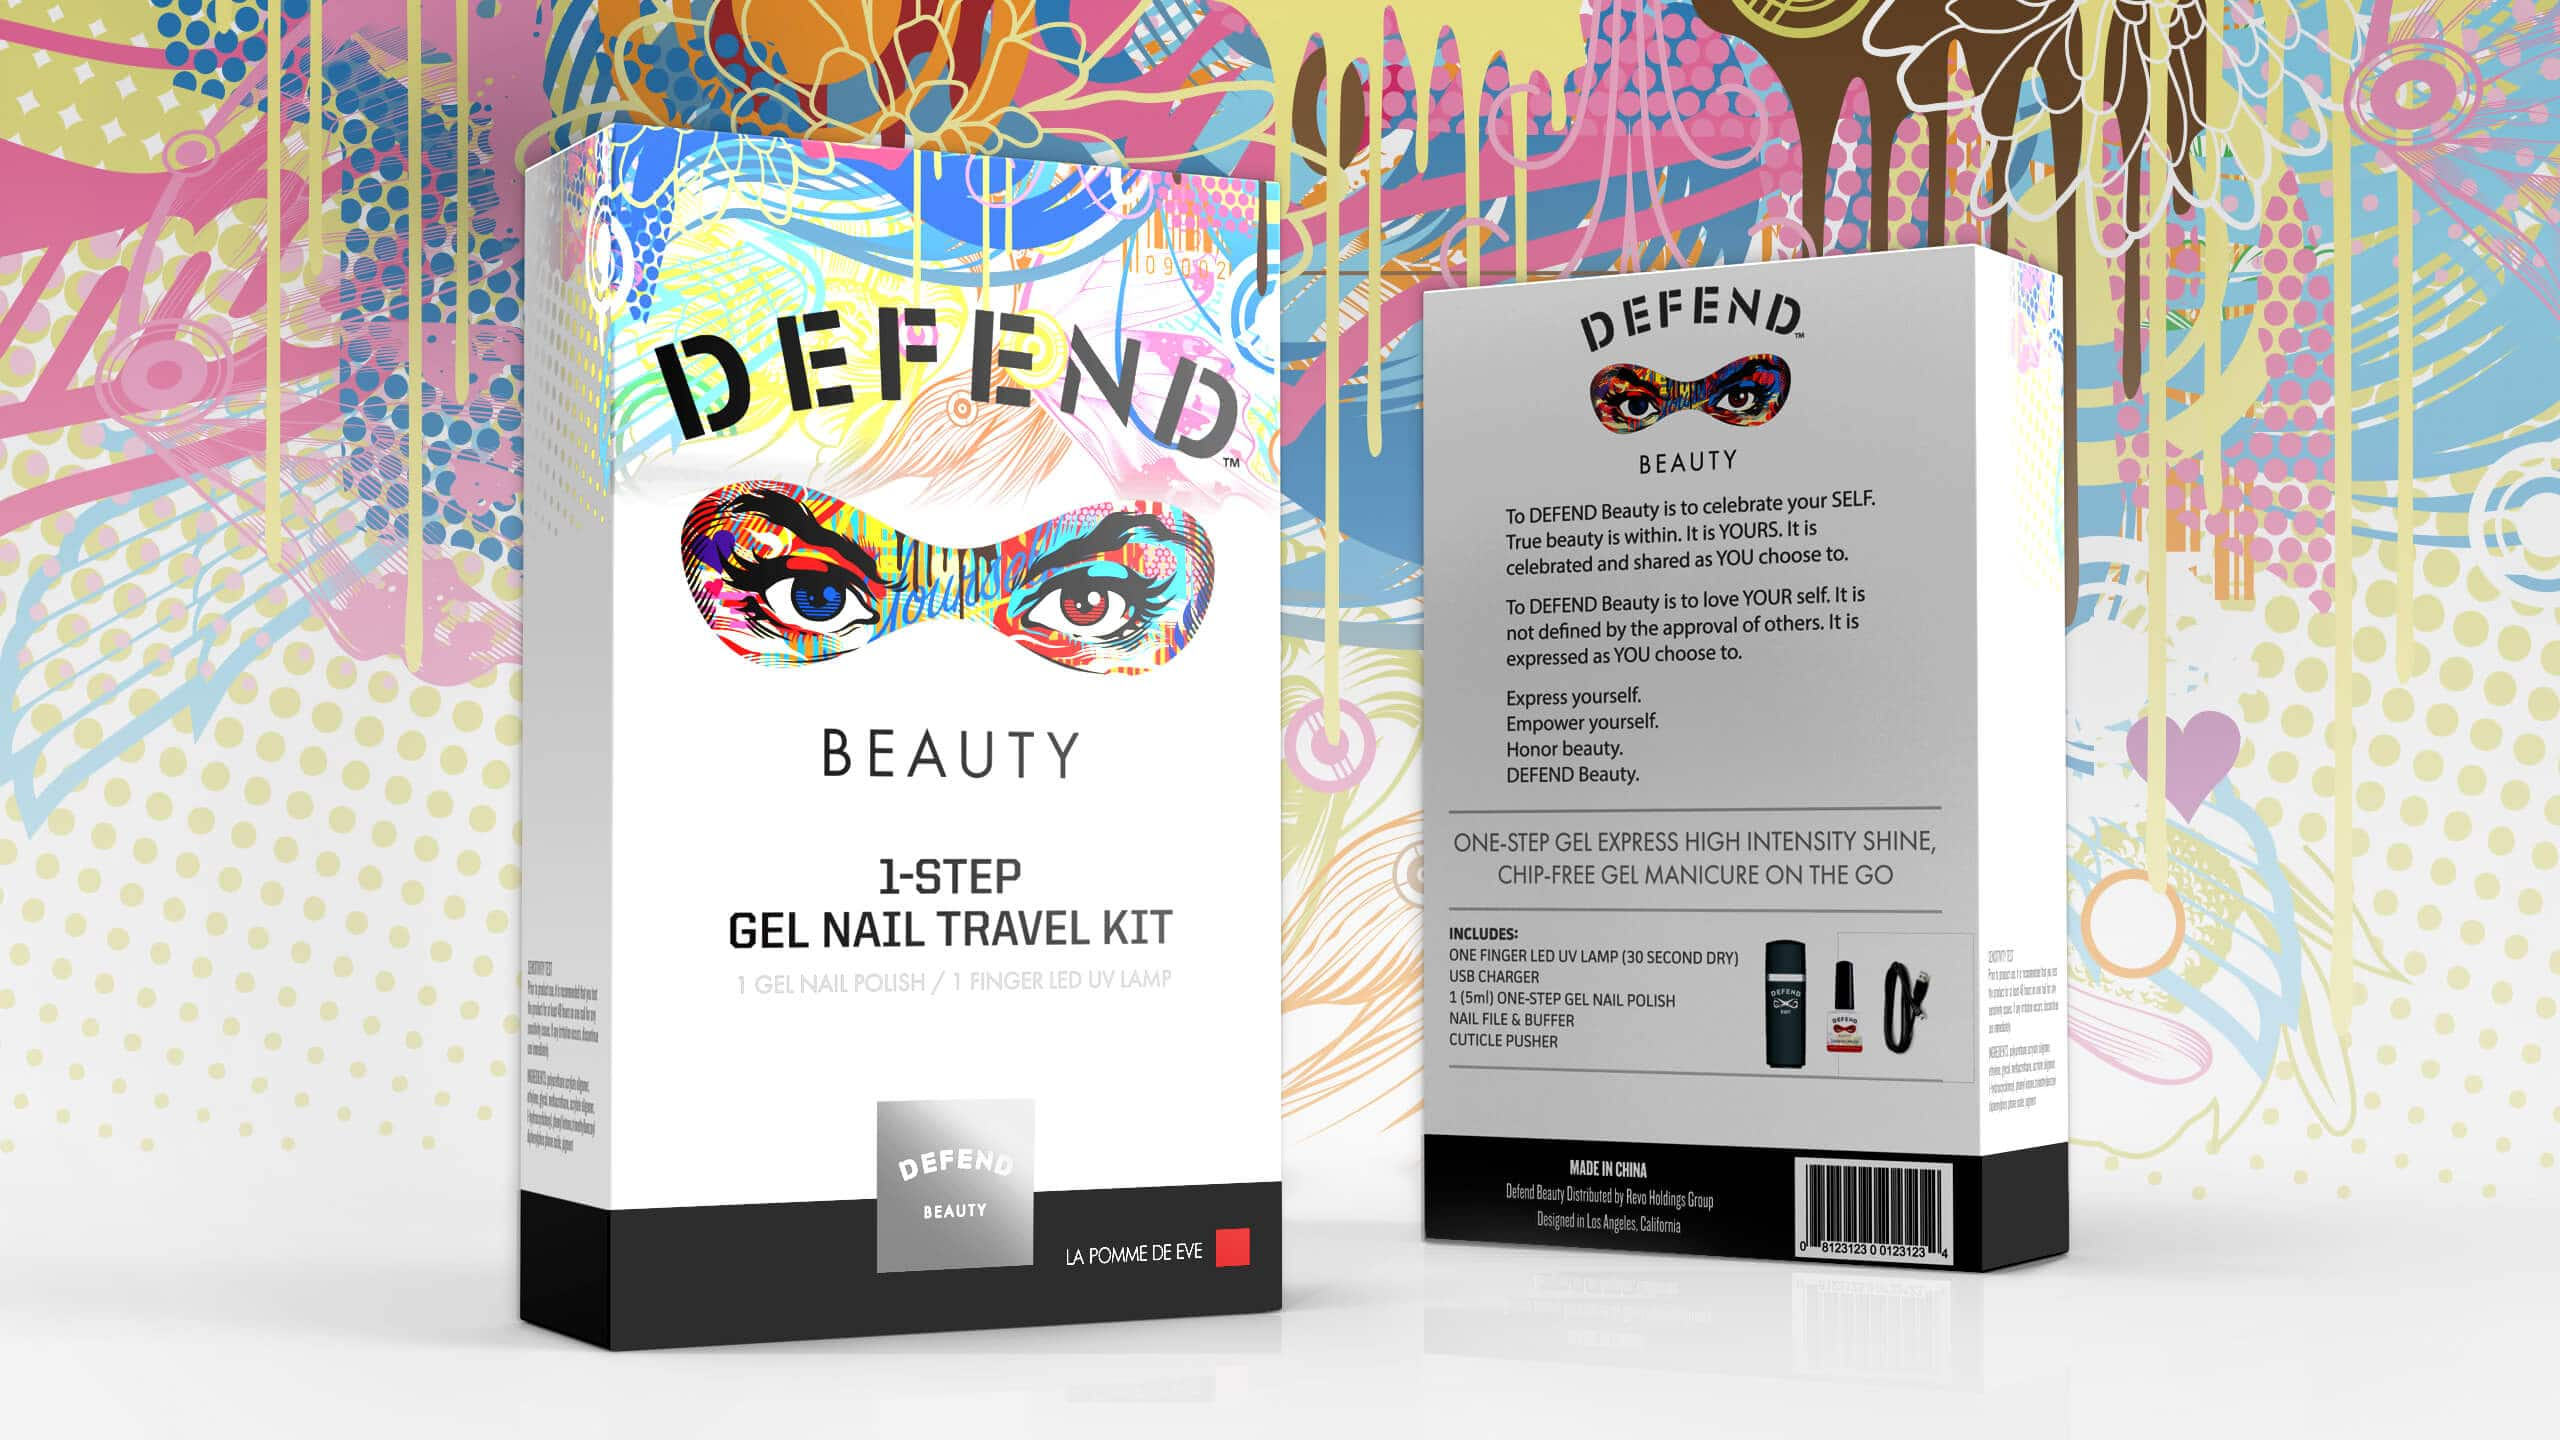 DEFEND BEAUTY